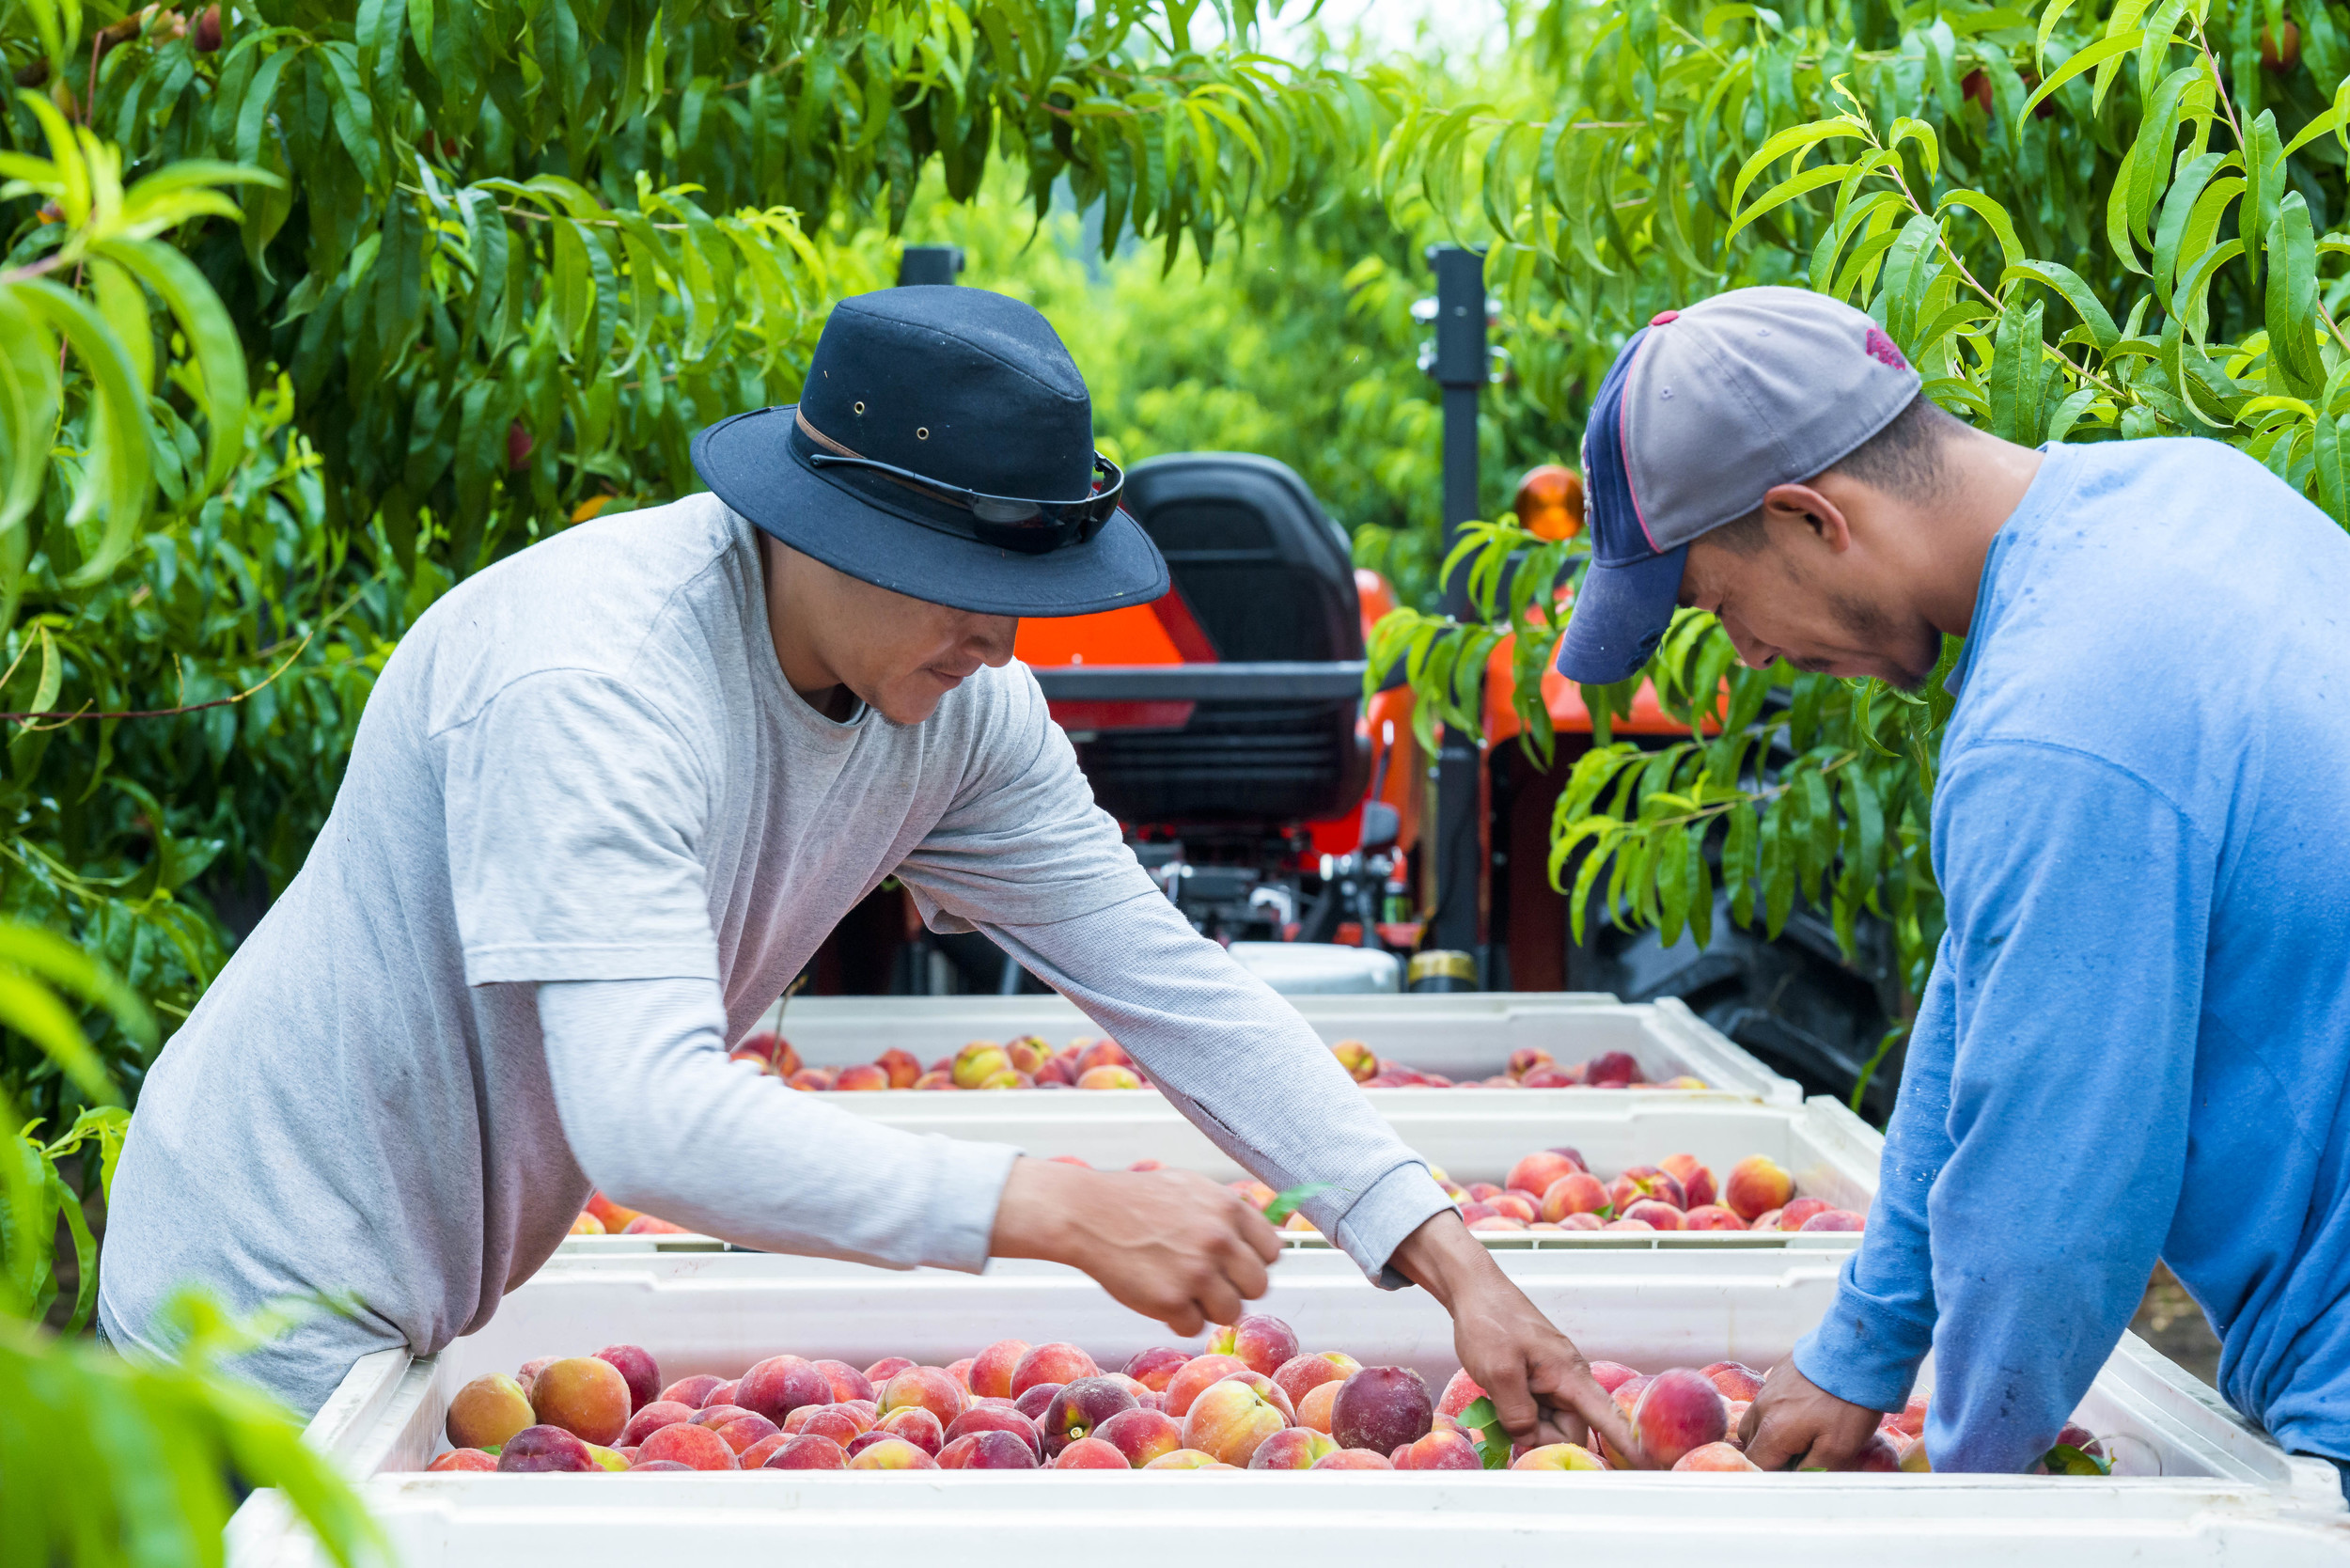 Prepping the peaches